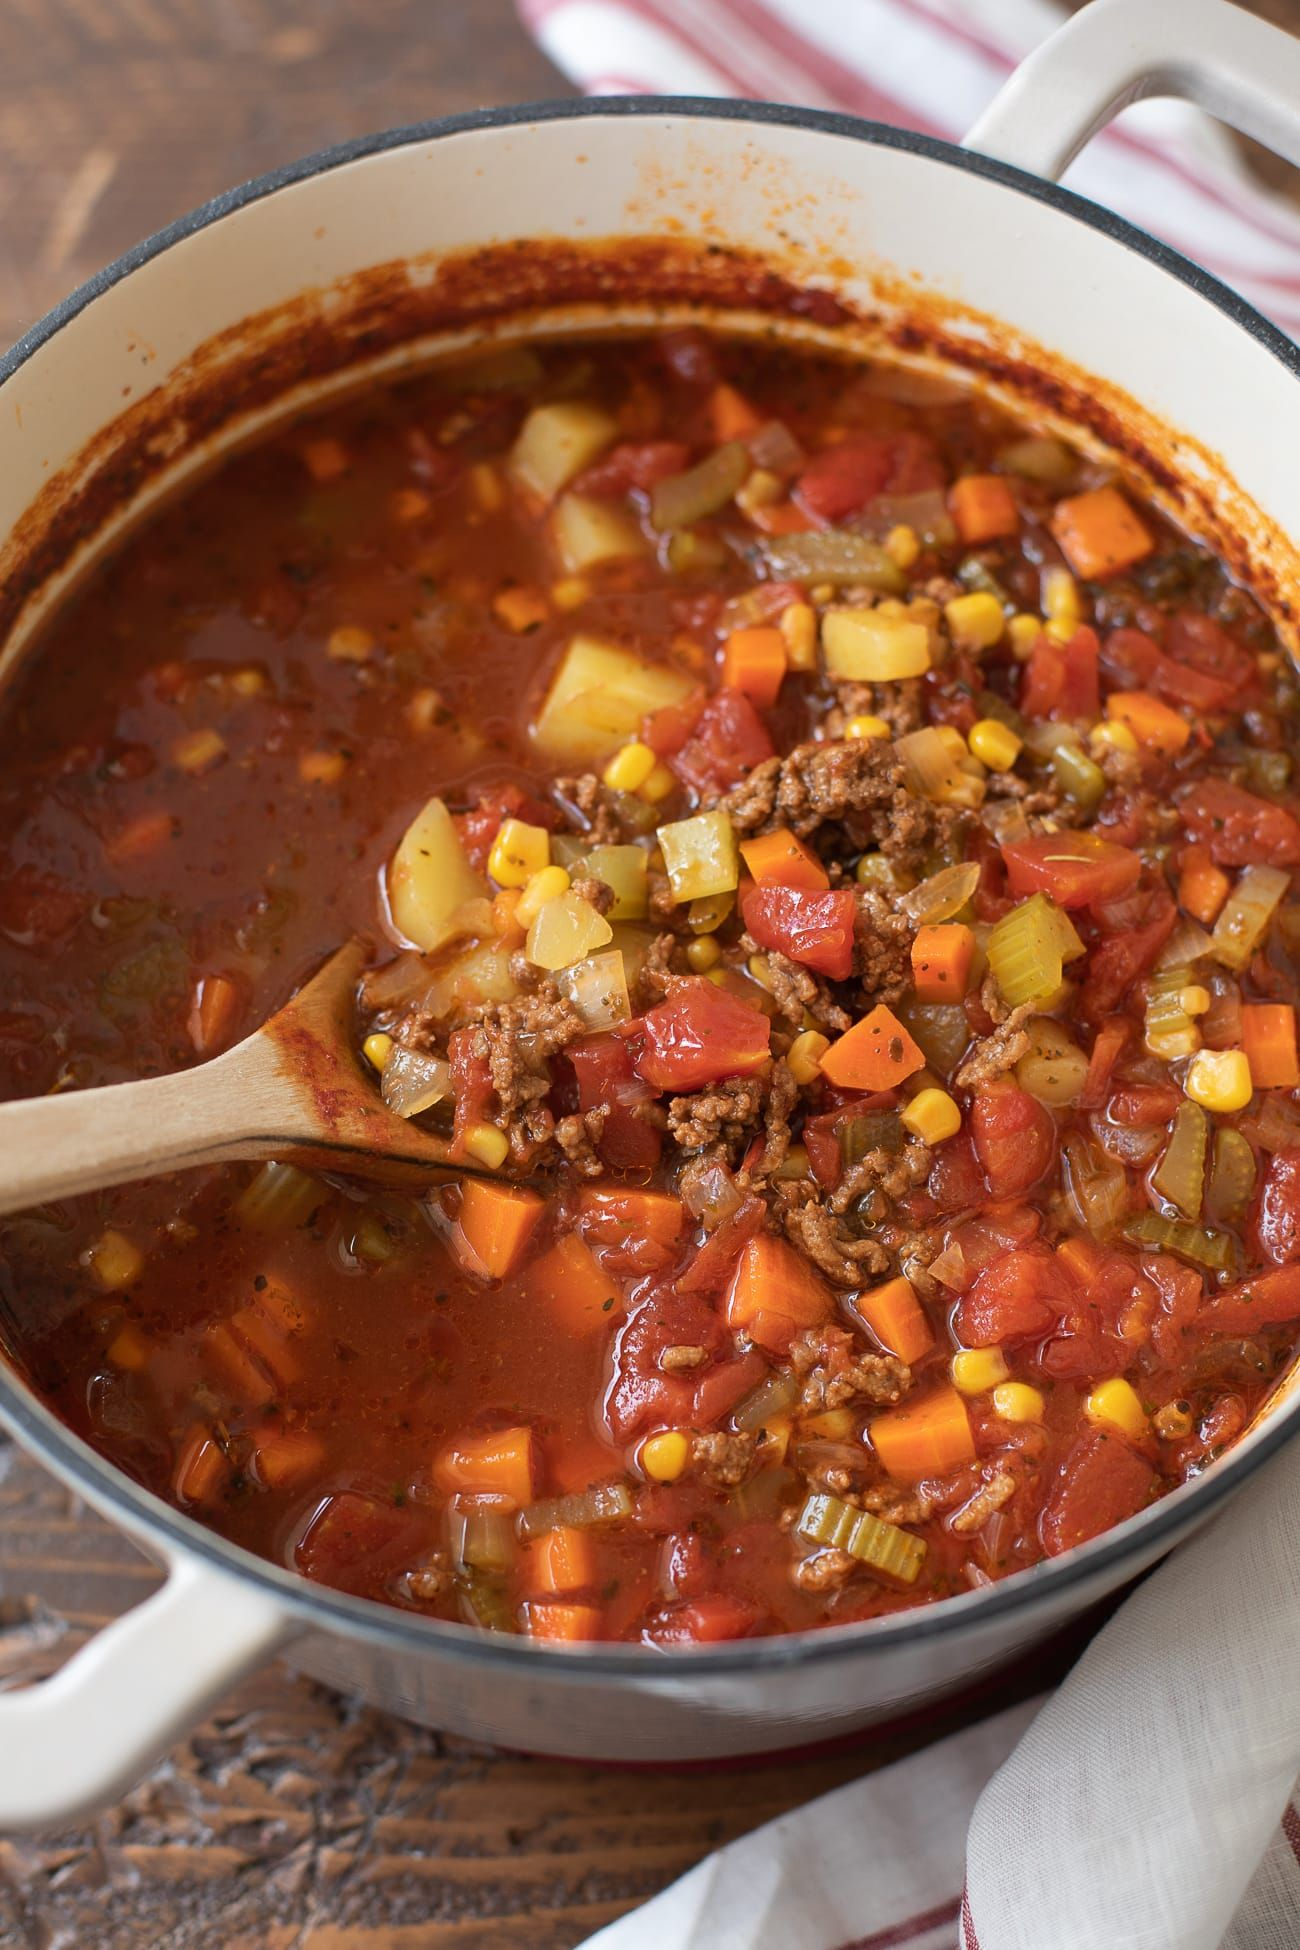 Hamburger Soup Recipe This Tasty Ground Beef Vegetable Soup Is Loaded With Potatoes Meat And Veggi Soup With Ground Beef Easy Hamburger Soup Hamburger Soup